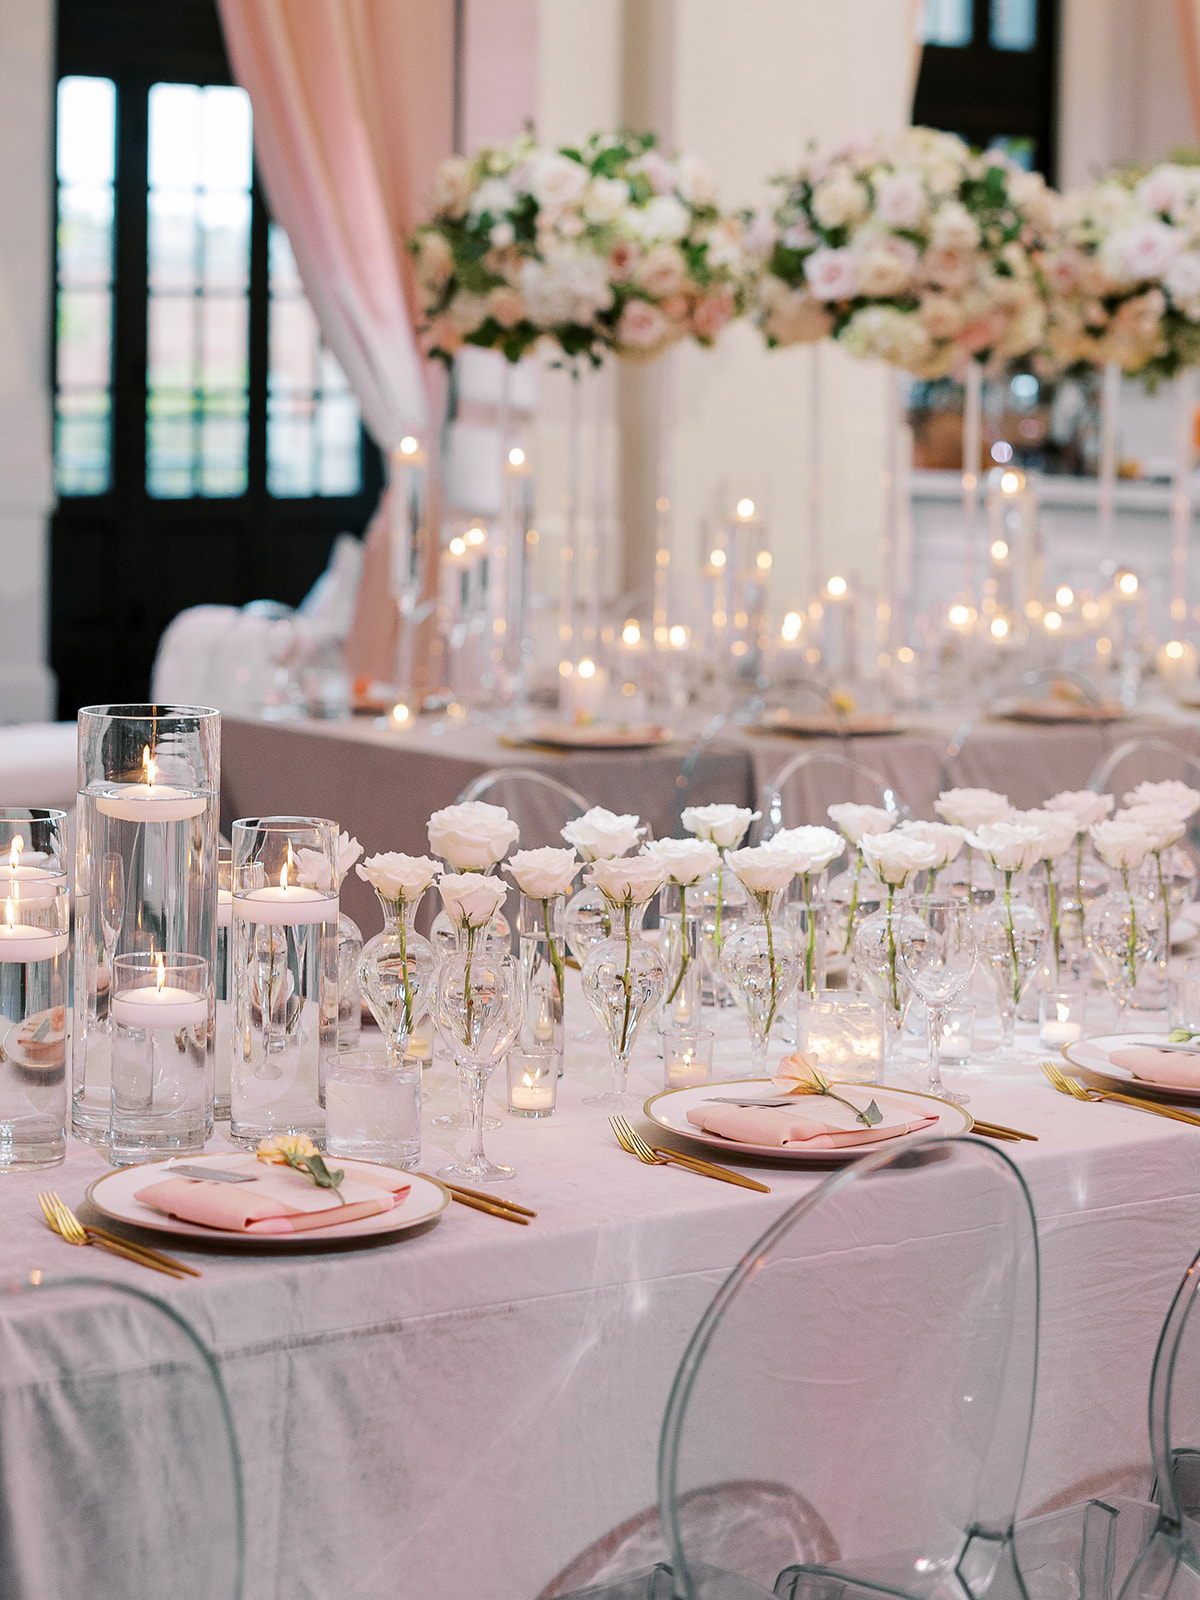 white flowers on reception tables at wedding